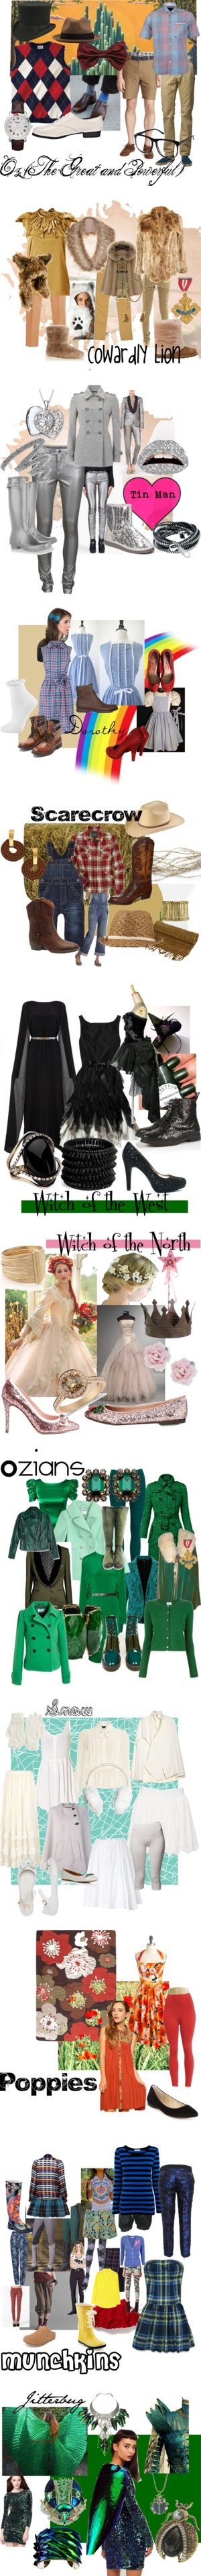 """""""Wizard of Oz Cast of Characters"""" by britt-n-graham on Polyvore"""